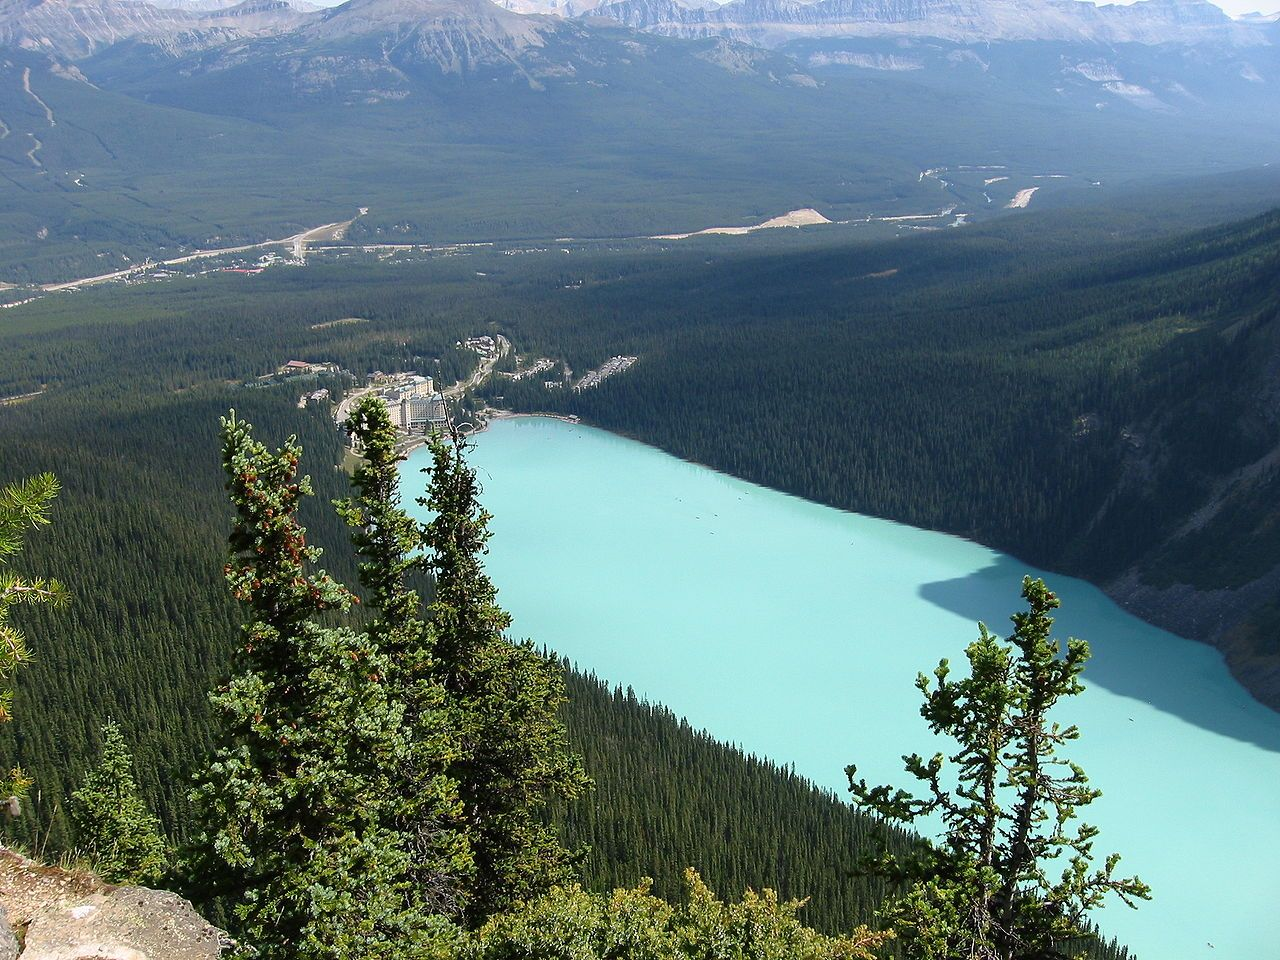 View of Lake Louise from the top of the Big Beehive. Banff National Park, Alberta, Canada